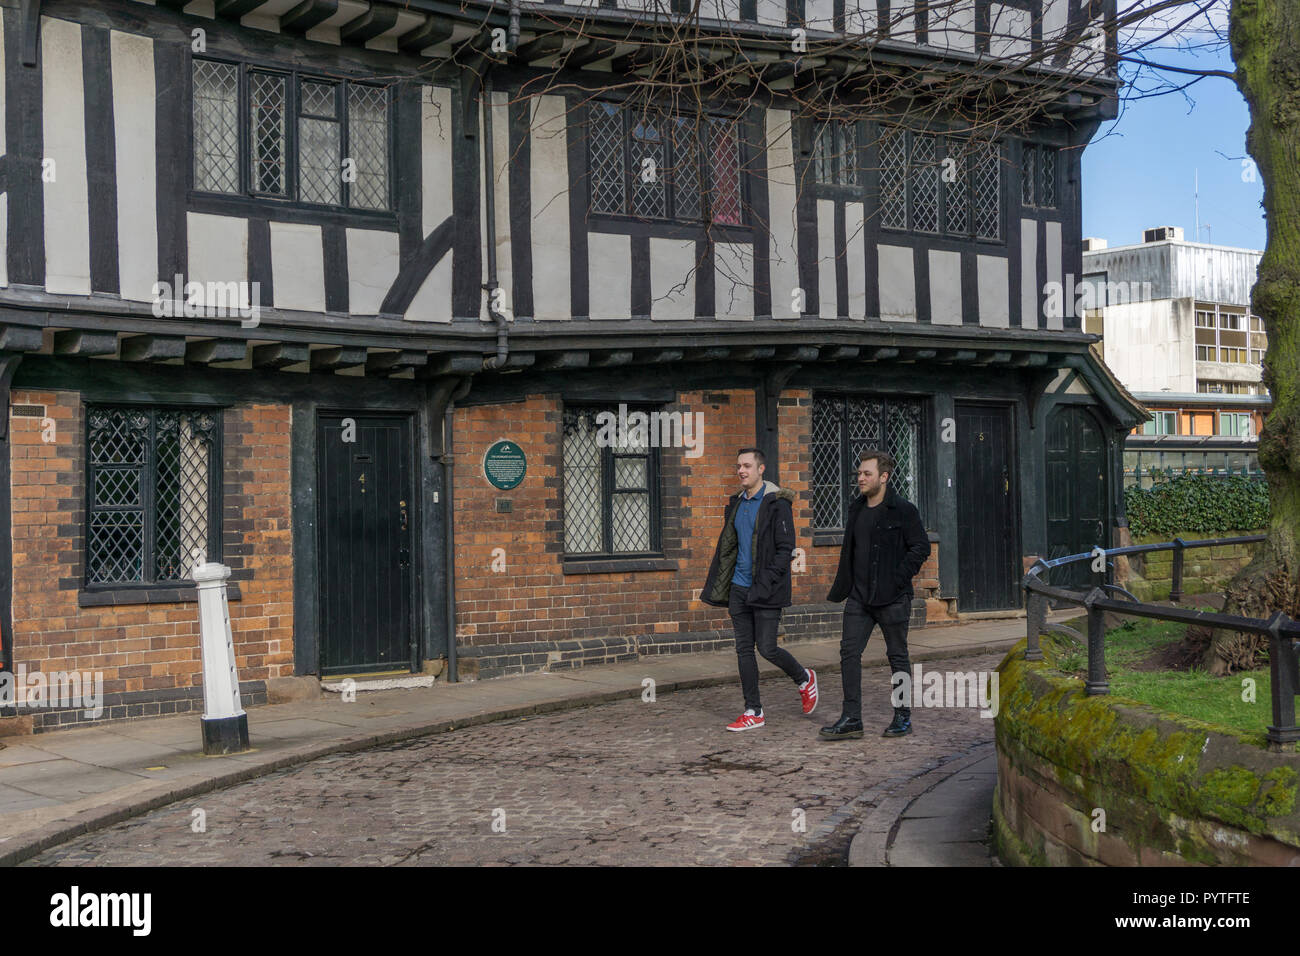 15th century Lychgate Cottages, named after the gate from which funerals once entered Holy Trinity graveyard; Coventry, West Midlands, UK - Stock Image